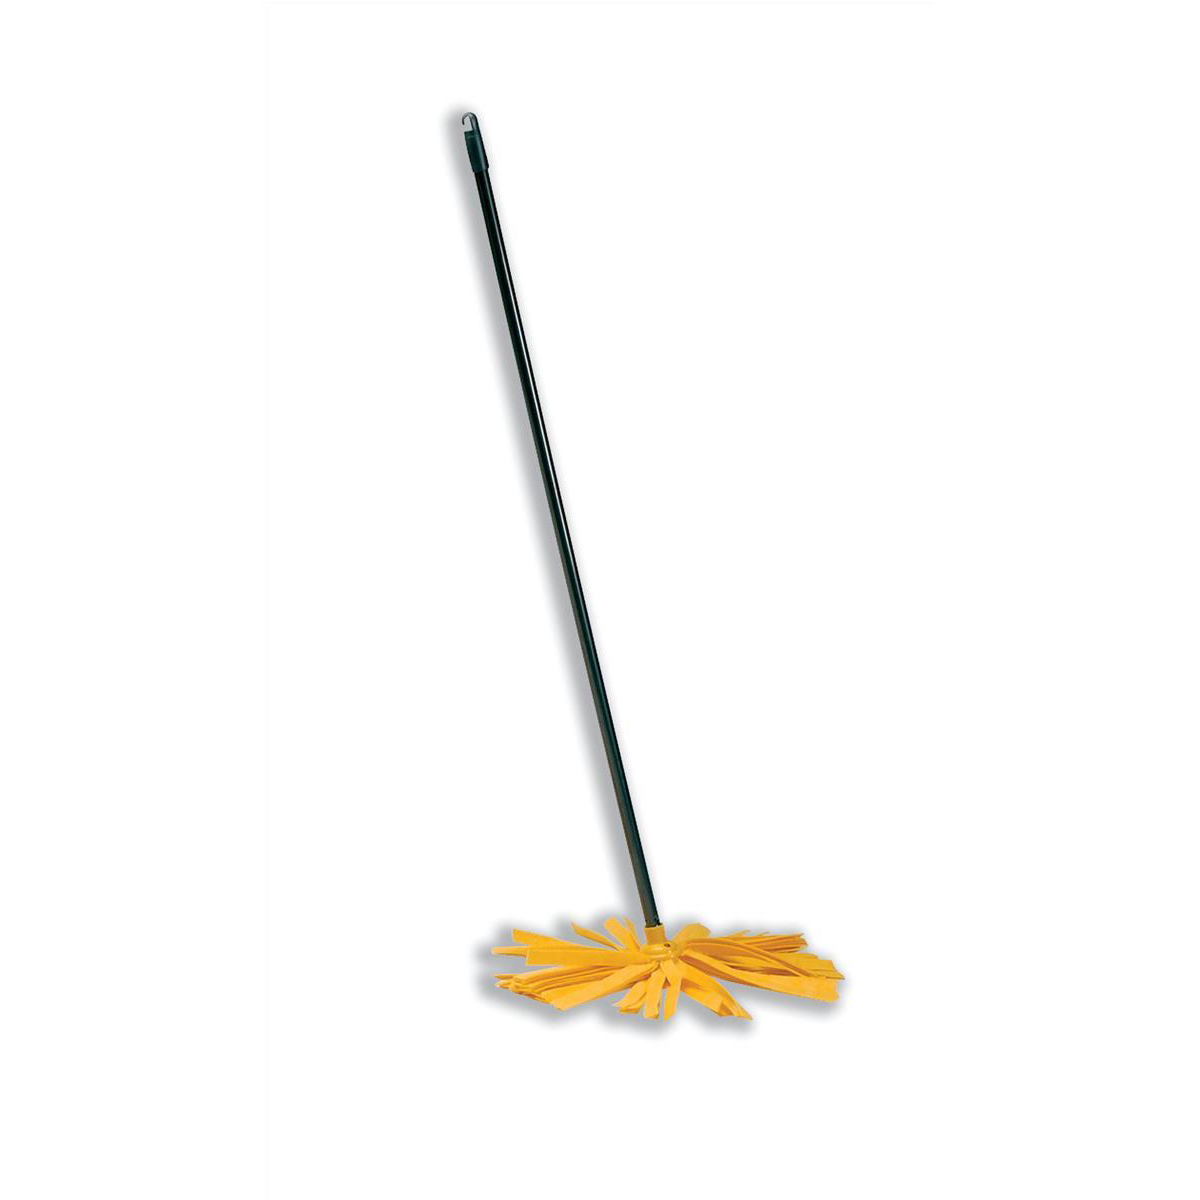 Wet mops Addis Complete Cloth Mop Head & Handle With Yellow Socket and Thick Absorbent Strands Ref 510246